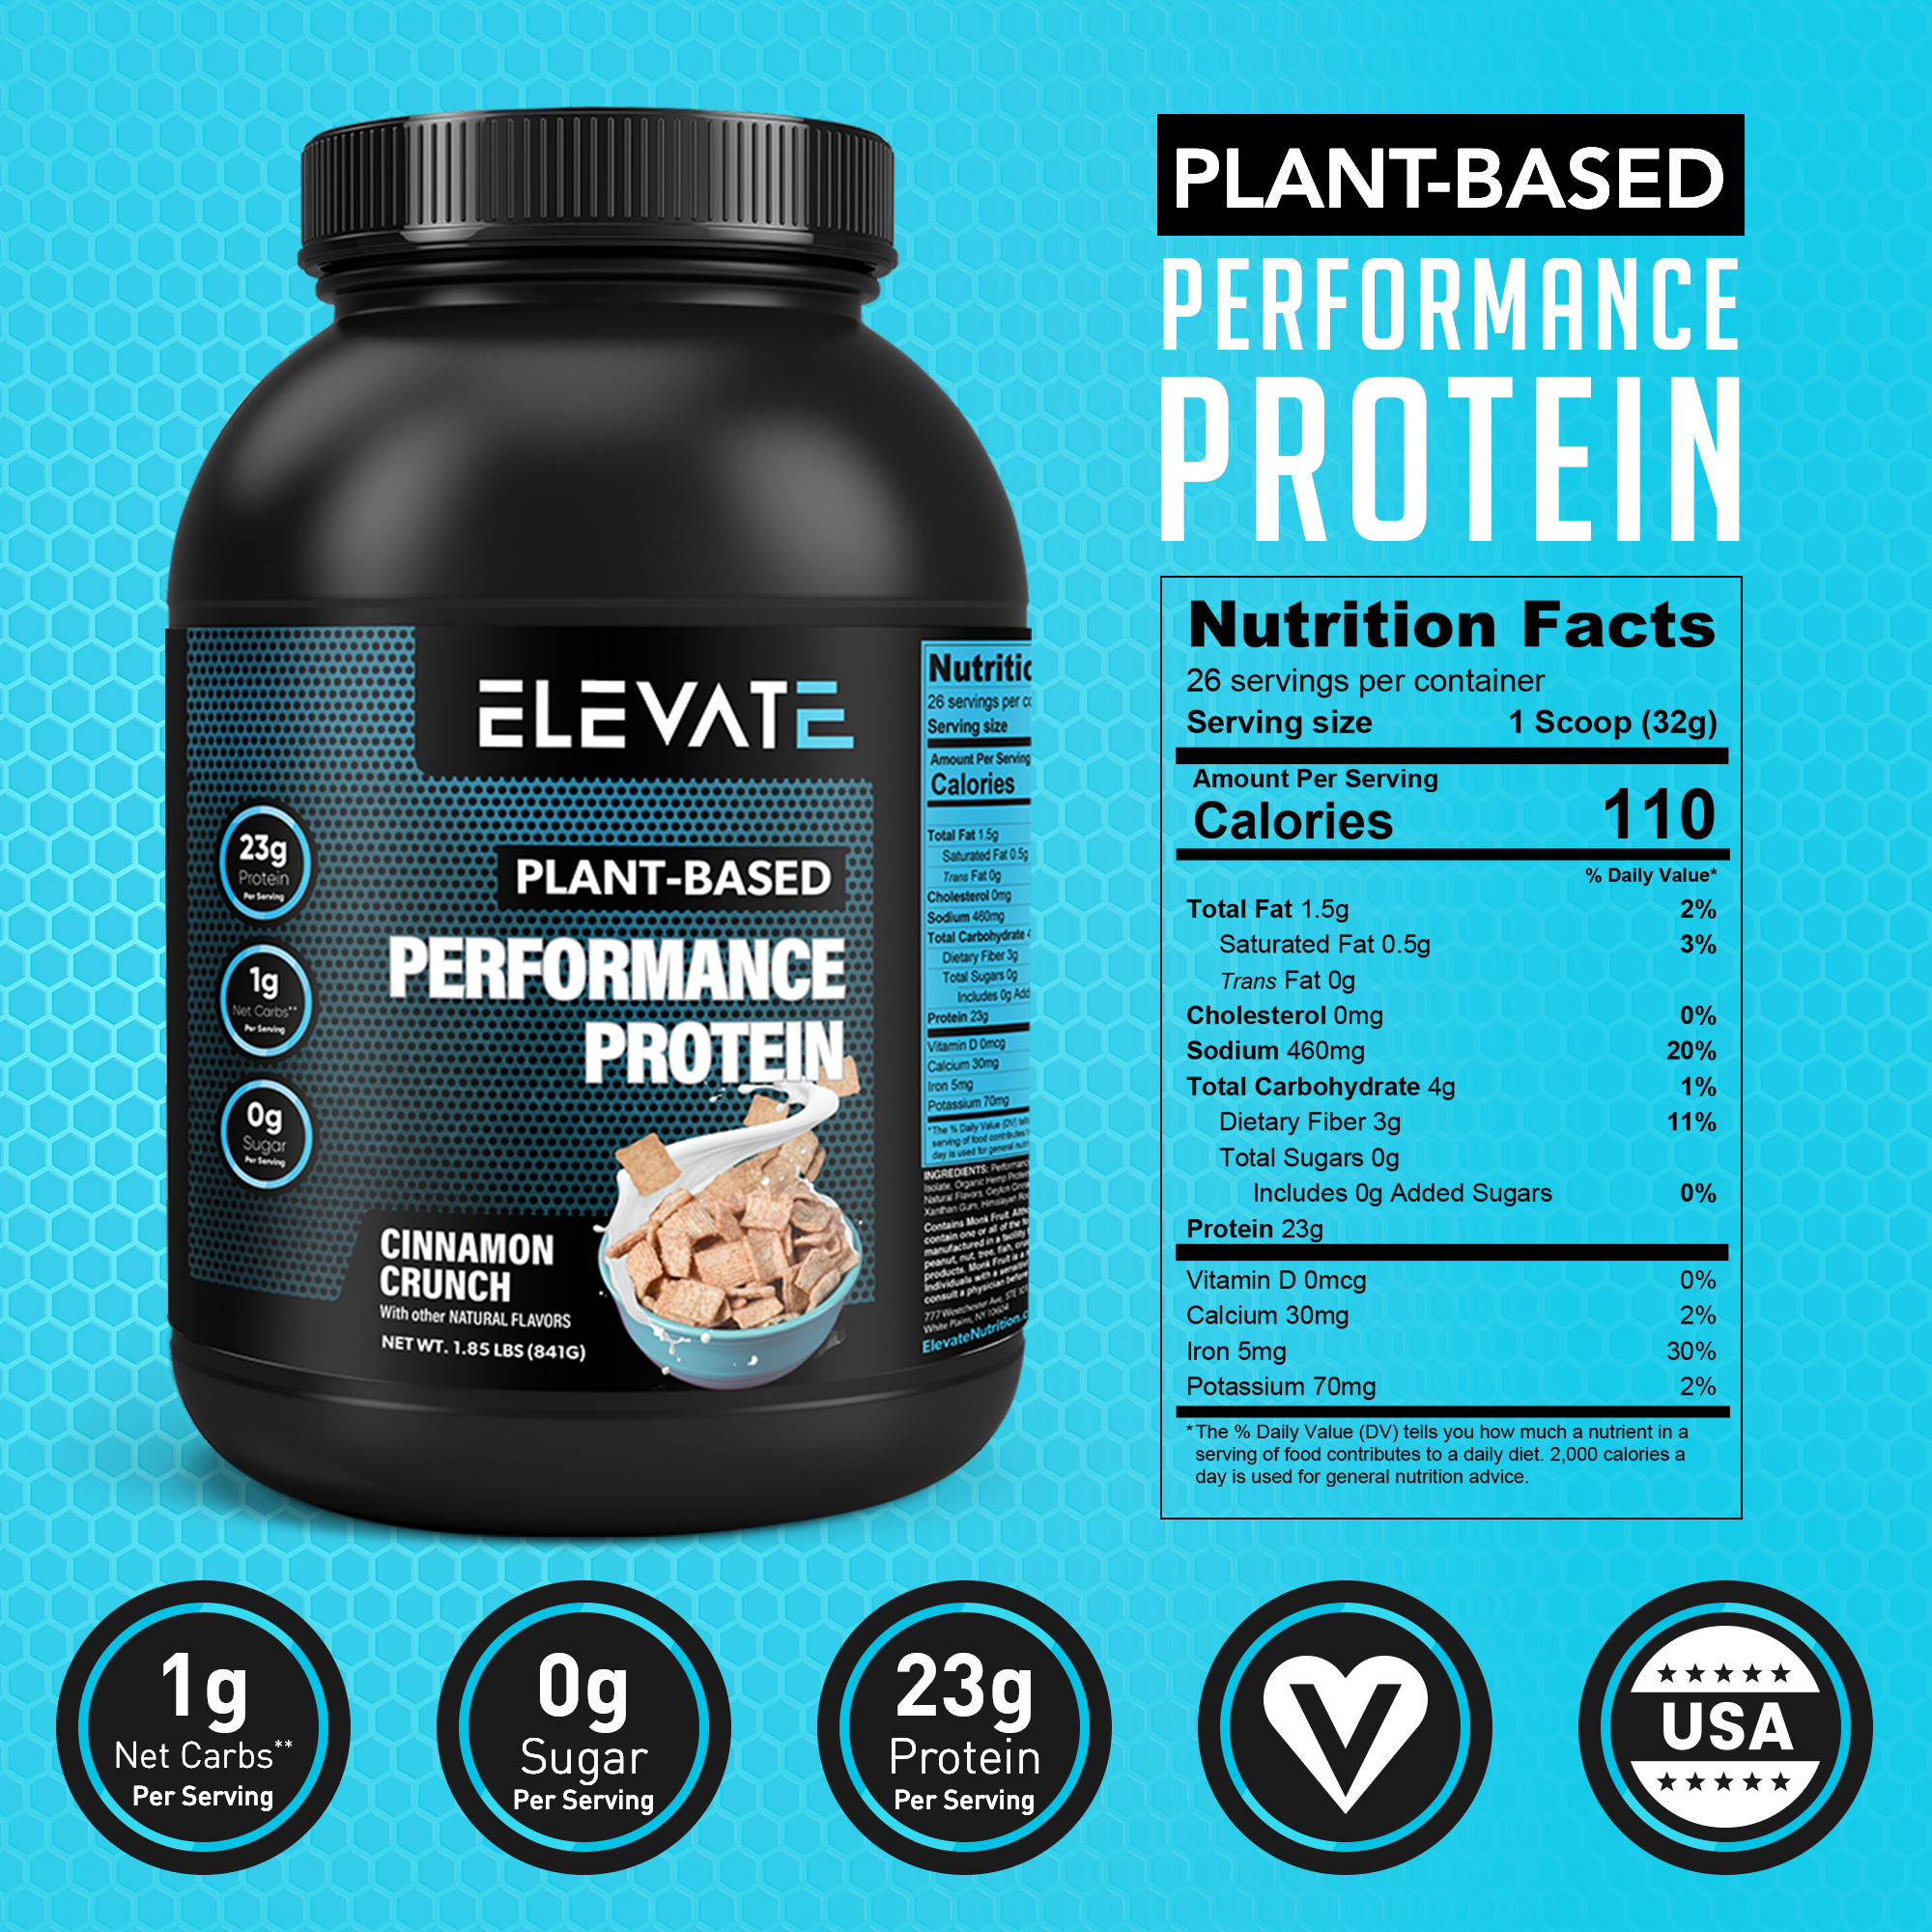 plant-based-performance-protein-cinnamon-crunch-nutrition-facts